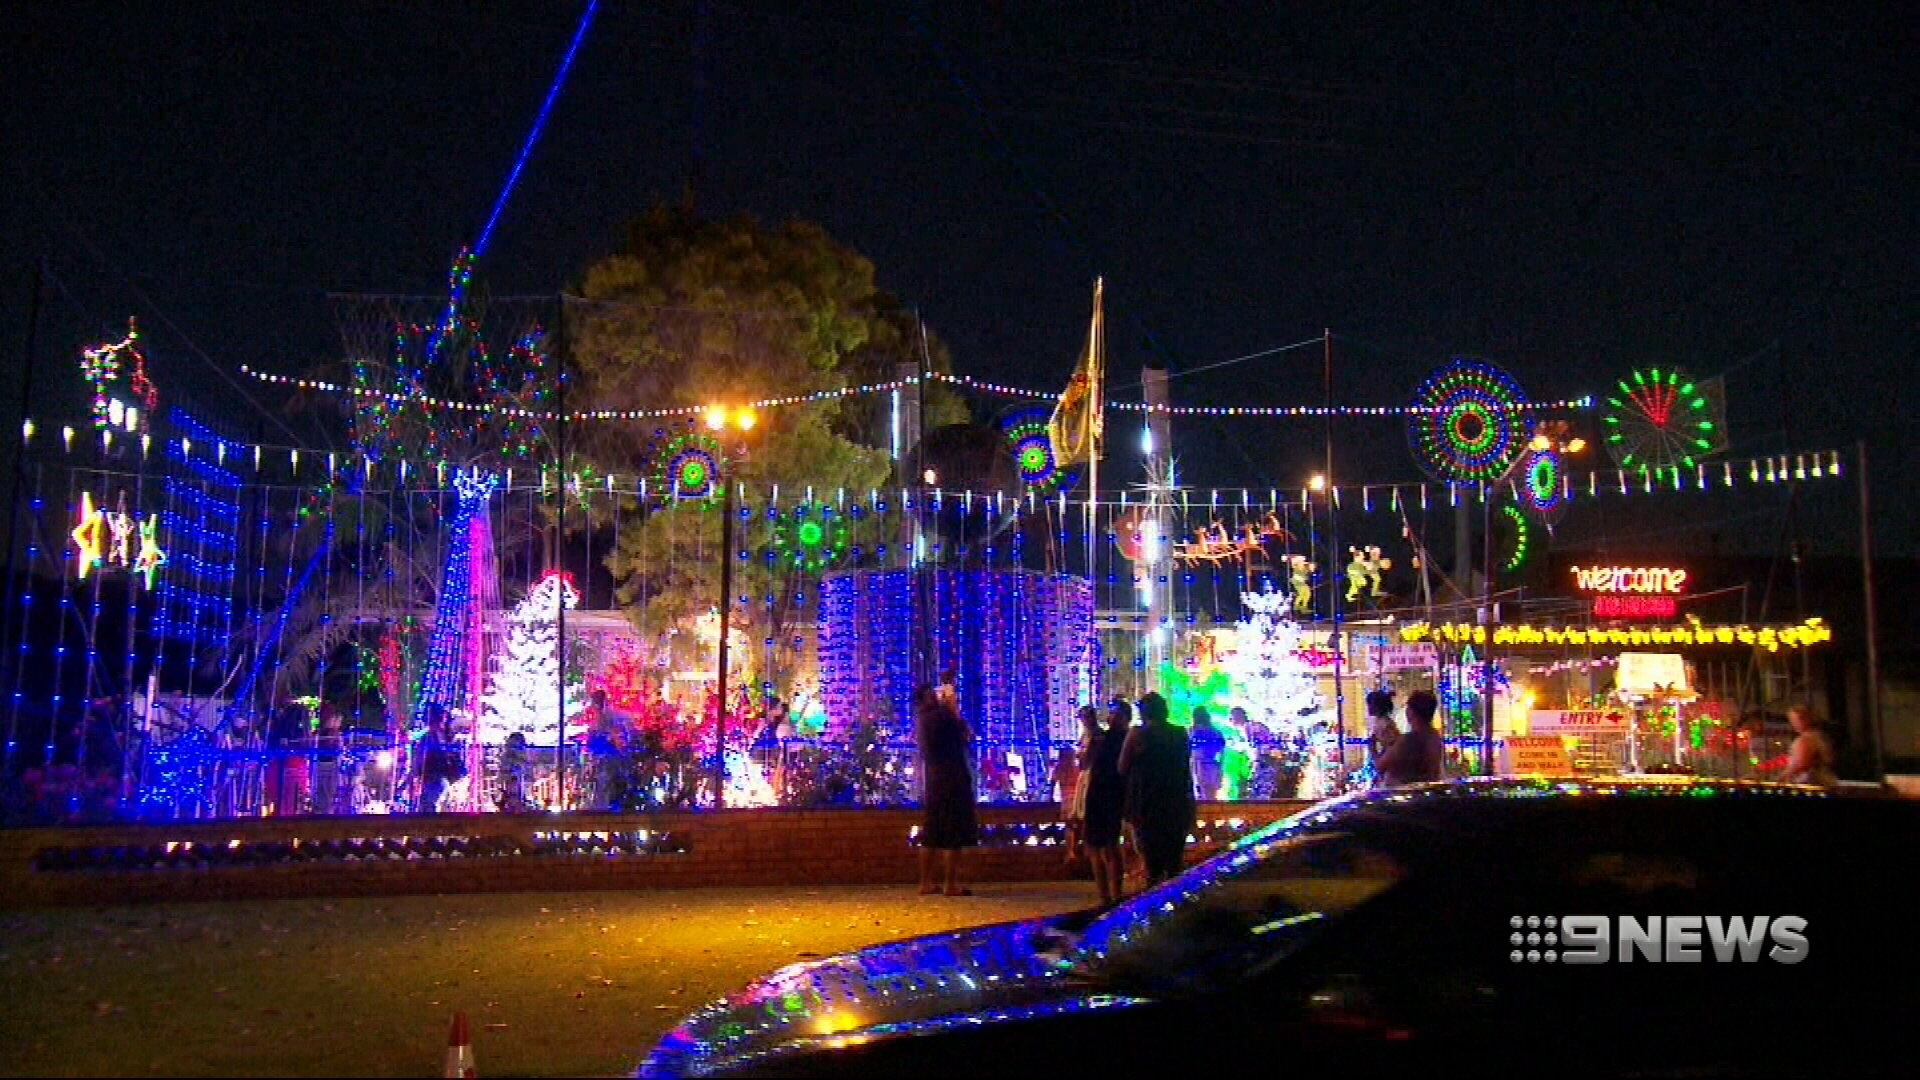 Perth council imposes red tape on Christmas lights